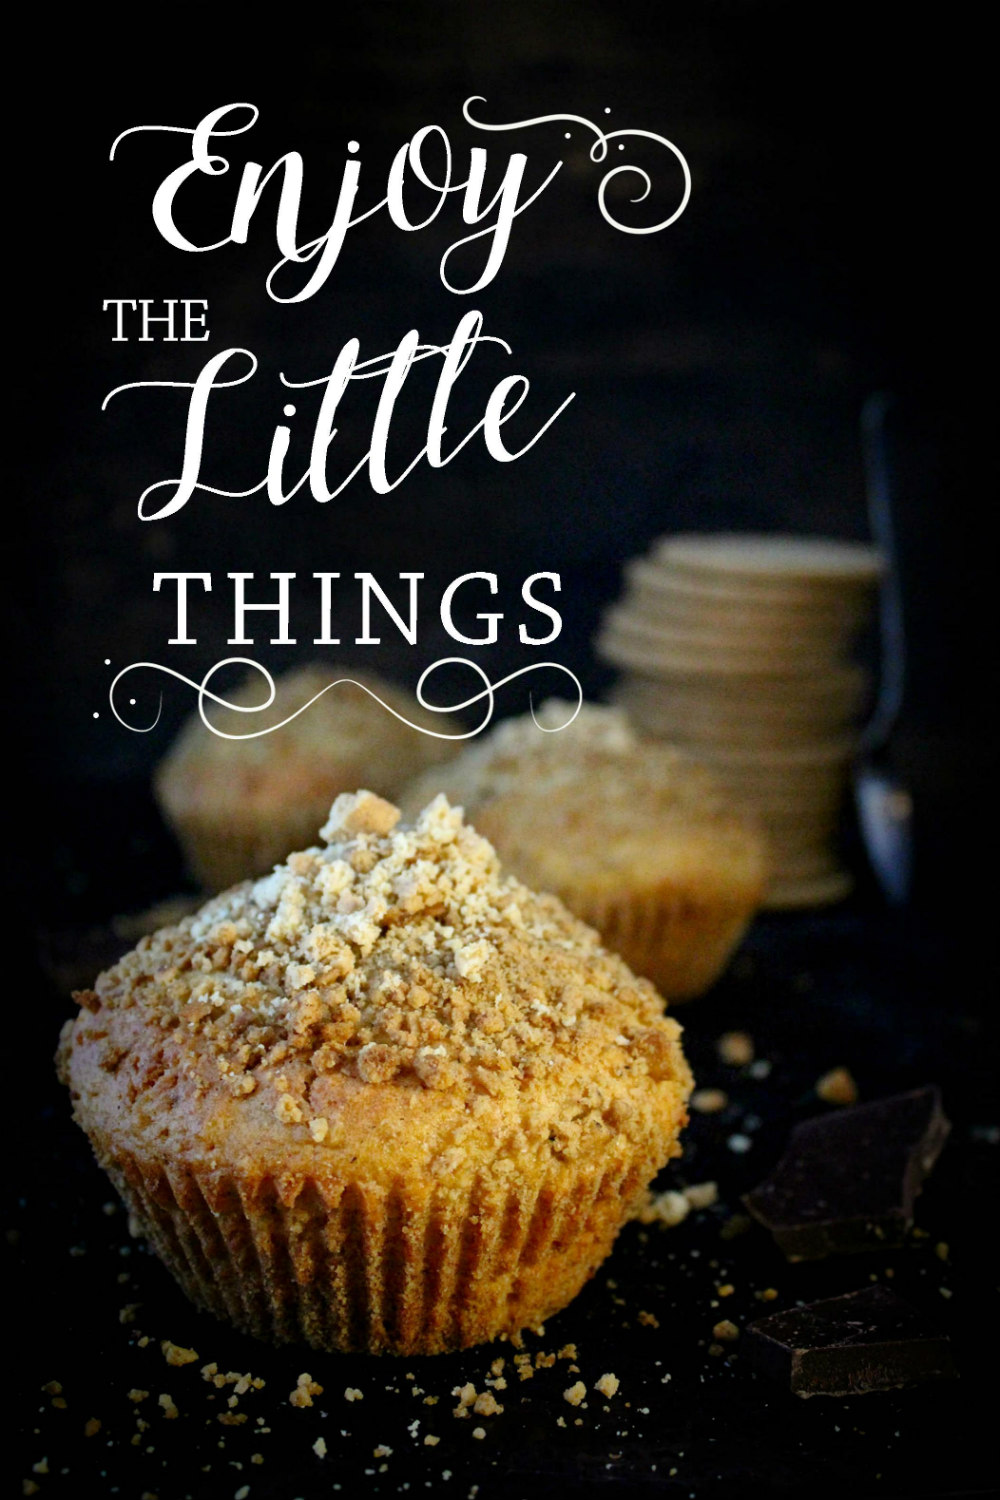 Digestive Crumble Cupcakes with Dark Chocolate Filling